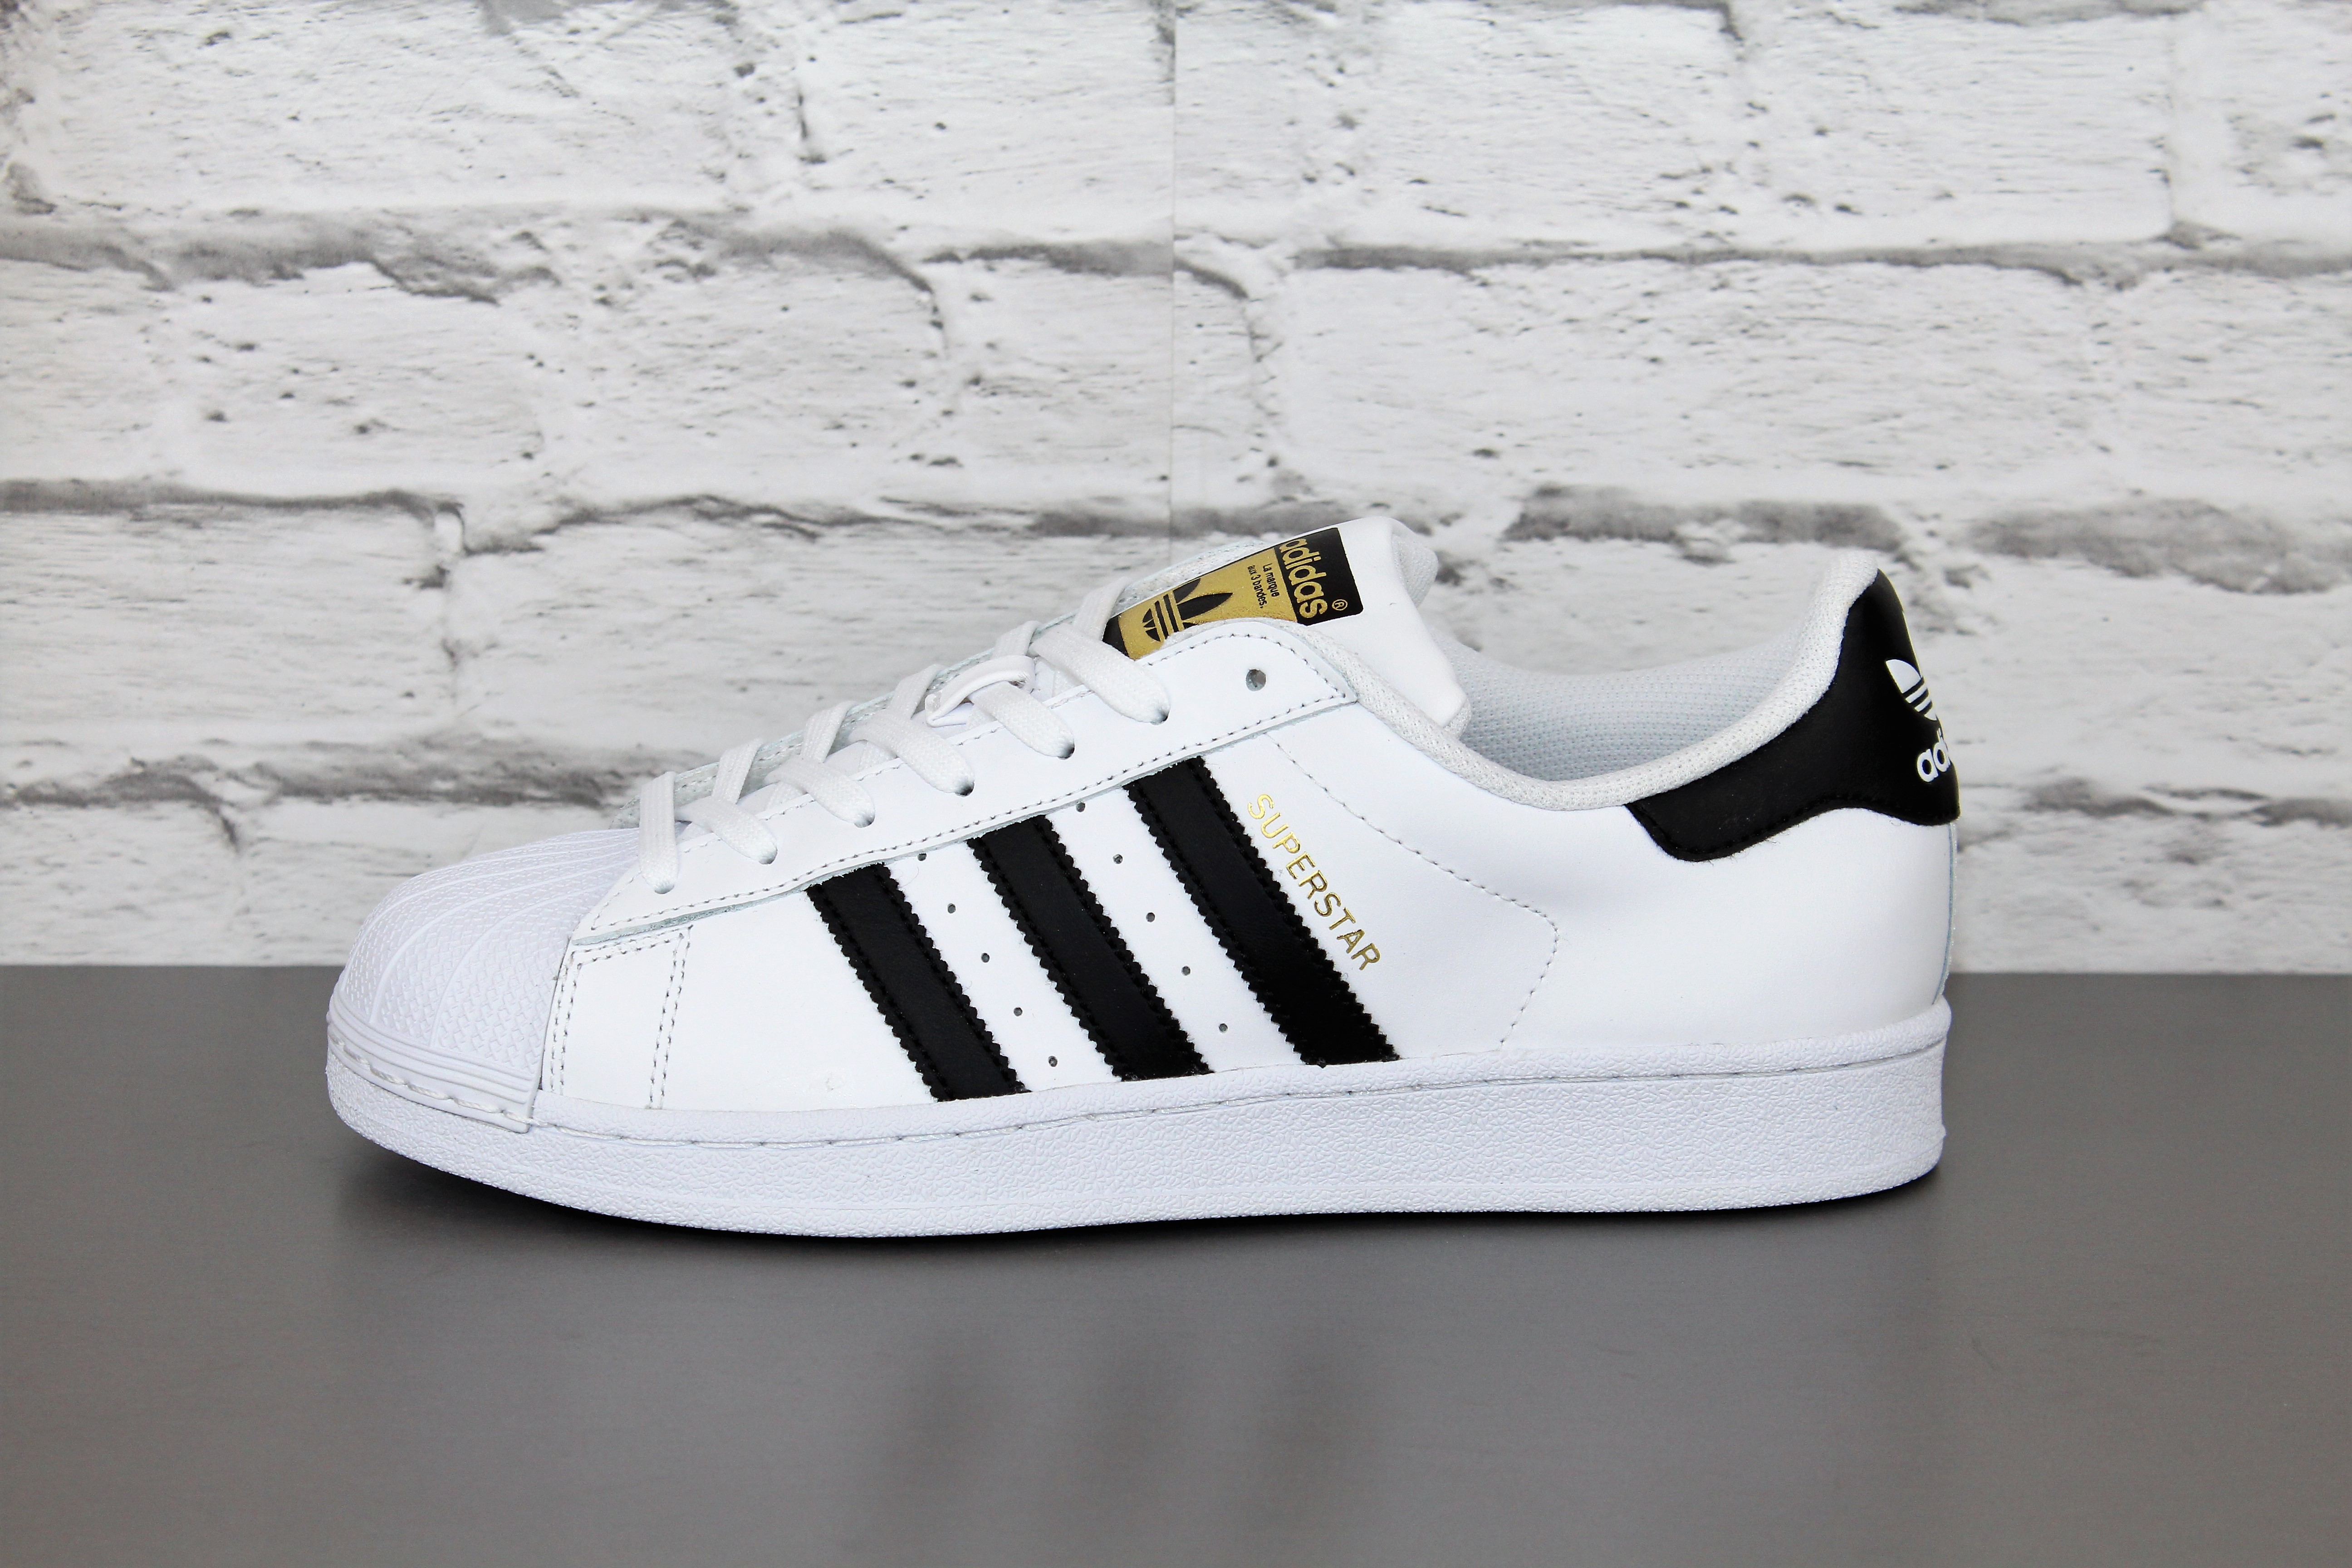 huge selection of e5f07 b067f ADIDAS SUPERSTAR C77124. Color  blanco. Material  Cuero Suela  Caucho  Forro  Textil Top Oferta! Nuevo y original. CON CARTÓN Y TODAS LAS  ETIQUETAS DE MARCA